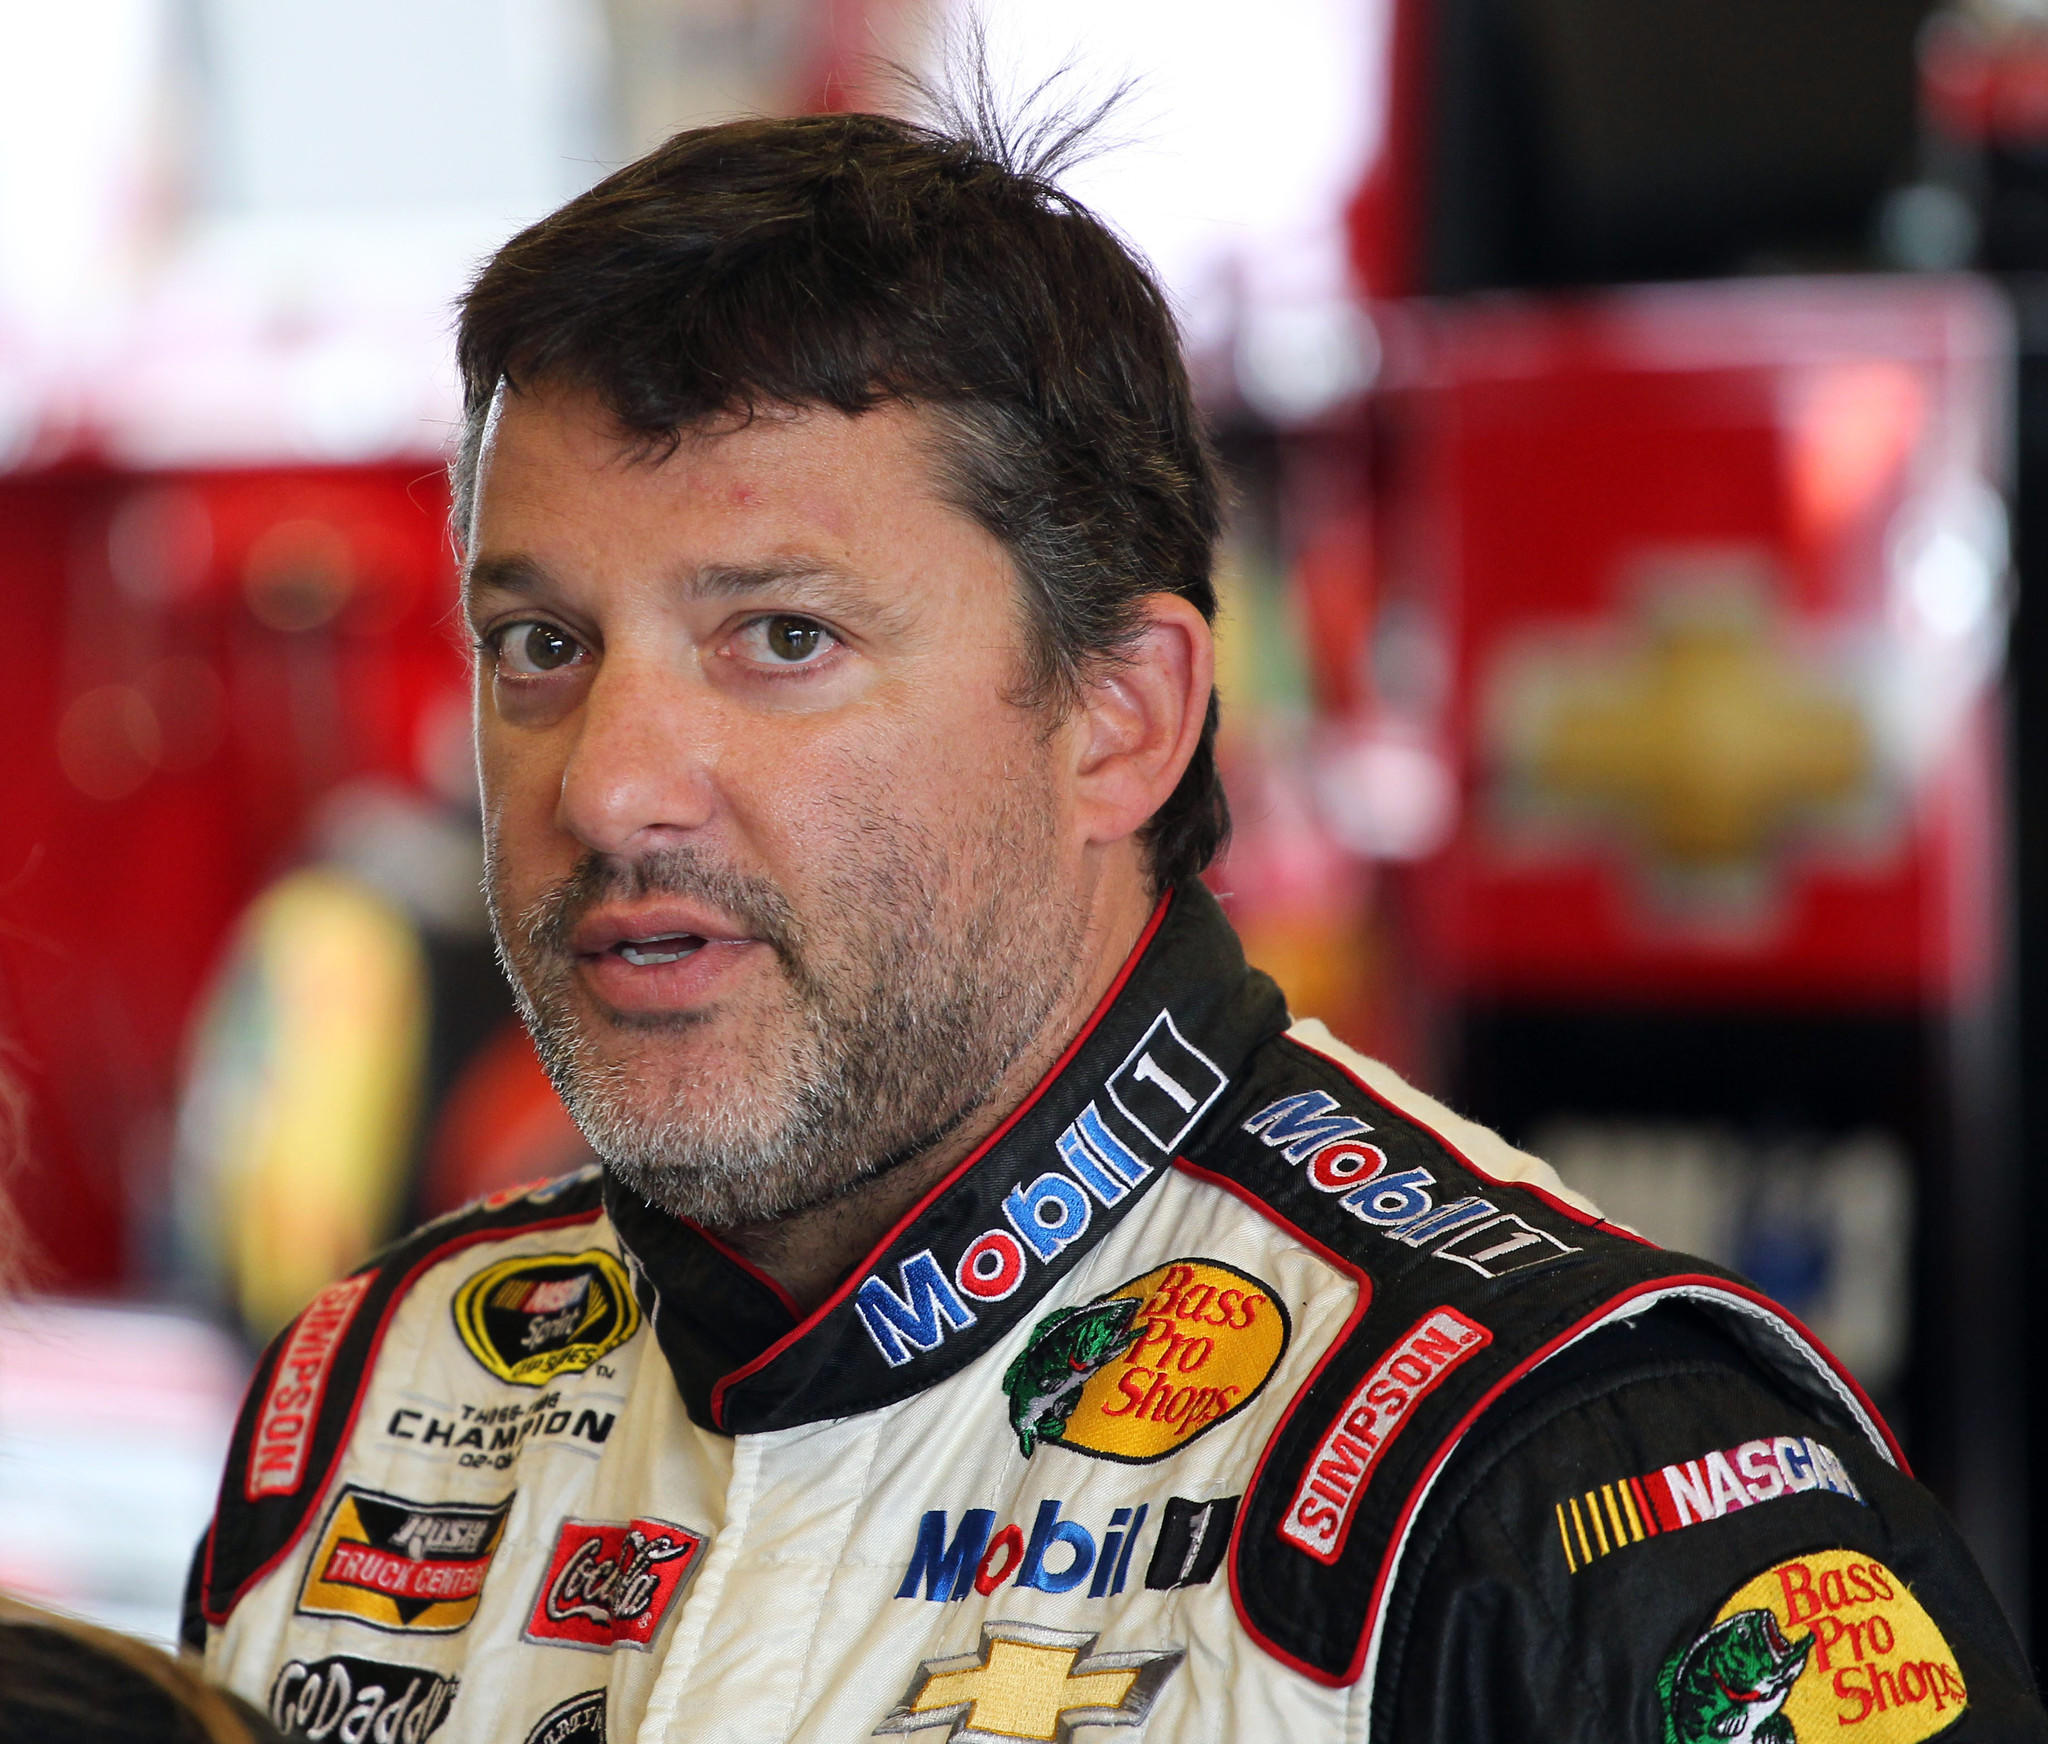 NASCAR Sprint Cup Series driver Tony Stewart stands in his garage during practice for the Crown Royal Brickyard 400 at Indianapolis Motor Speedway in July.